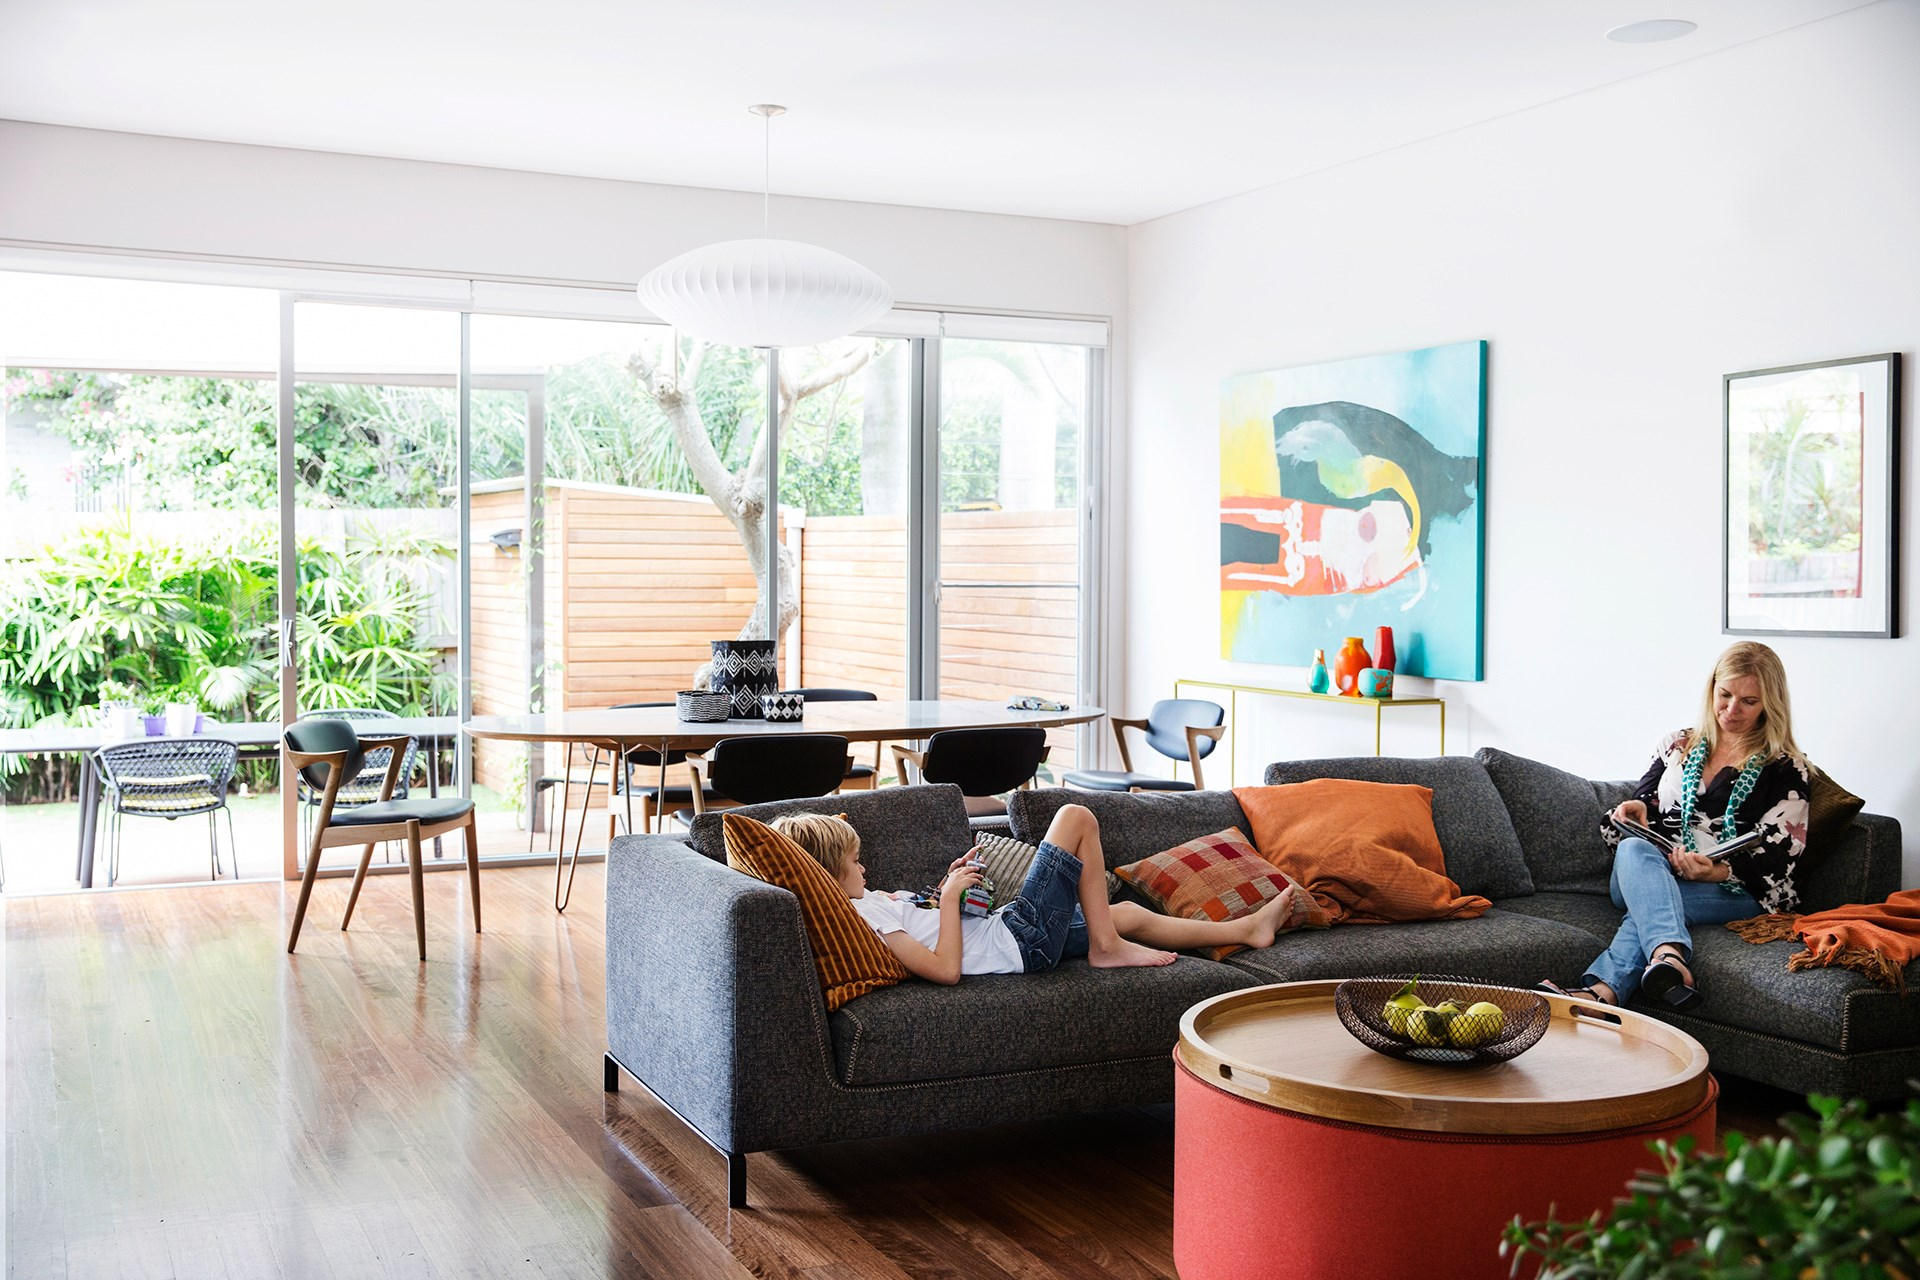 """A smart renovation turned this 1930s Sydney semi into a home its owners love to spend time in. A sliding glass door and window that can be opened right up maximise airflow, while a mature frangipani tree and external awning keep hot rays at bay. On really warm days, the blinds can be lowered to keep the home cool. [See more of this house](http://www.homestolove.com.au/gallery-julie-and-hamishs-renovated-sydney-semi-2290